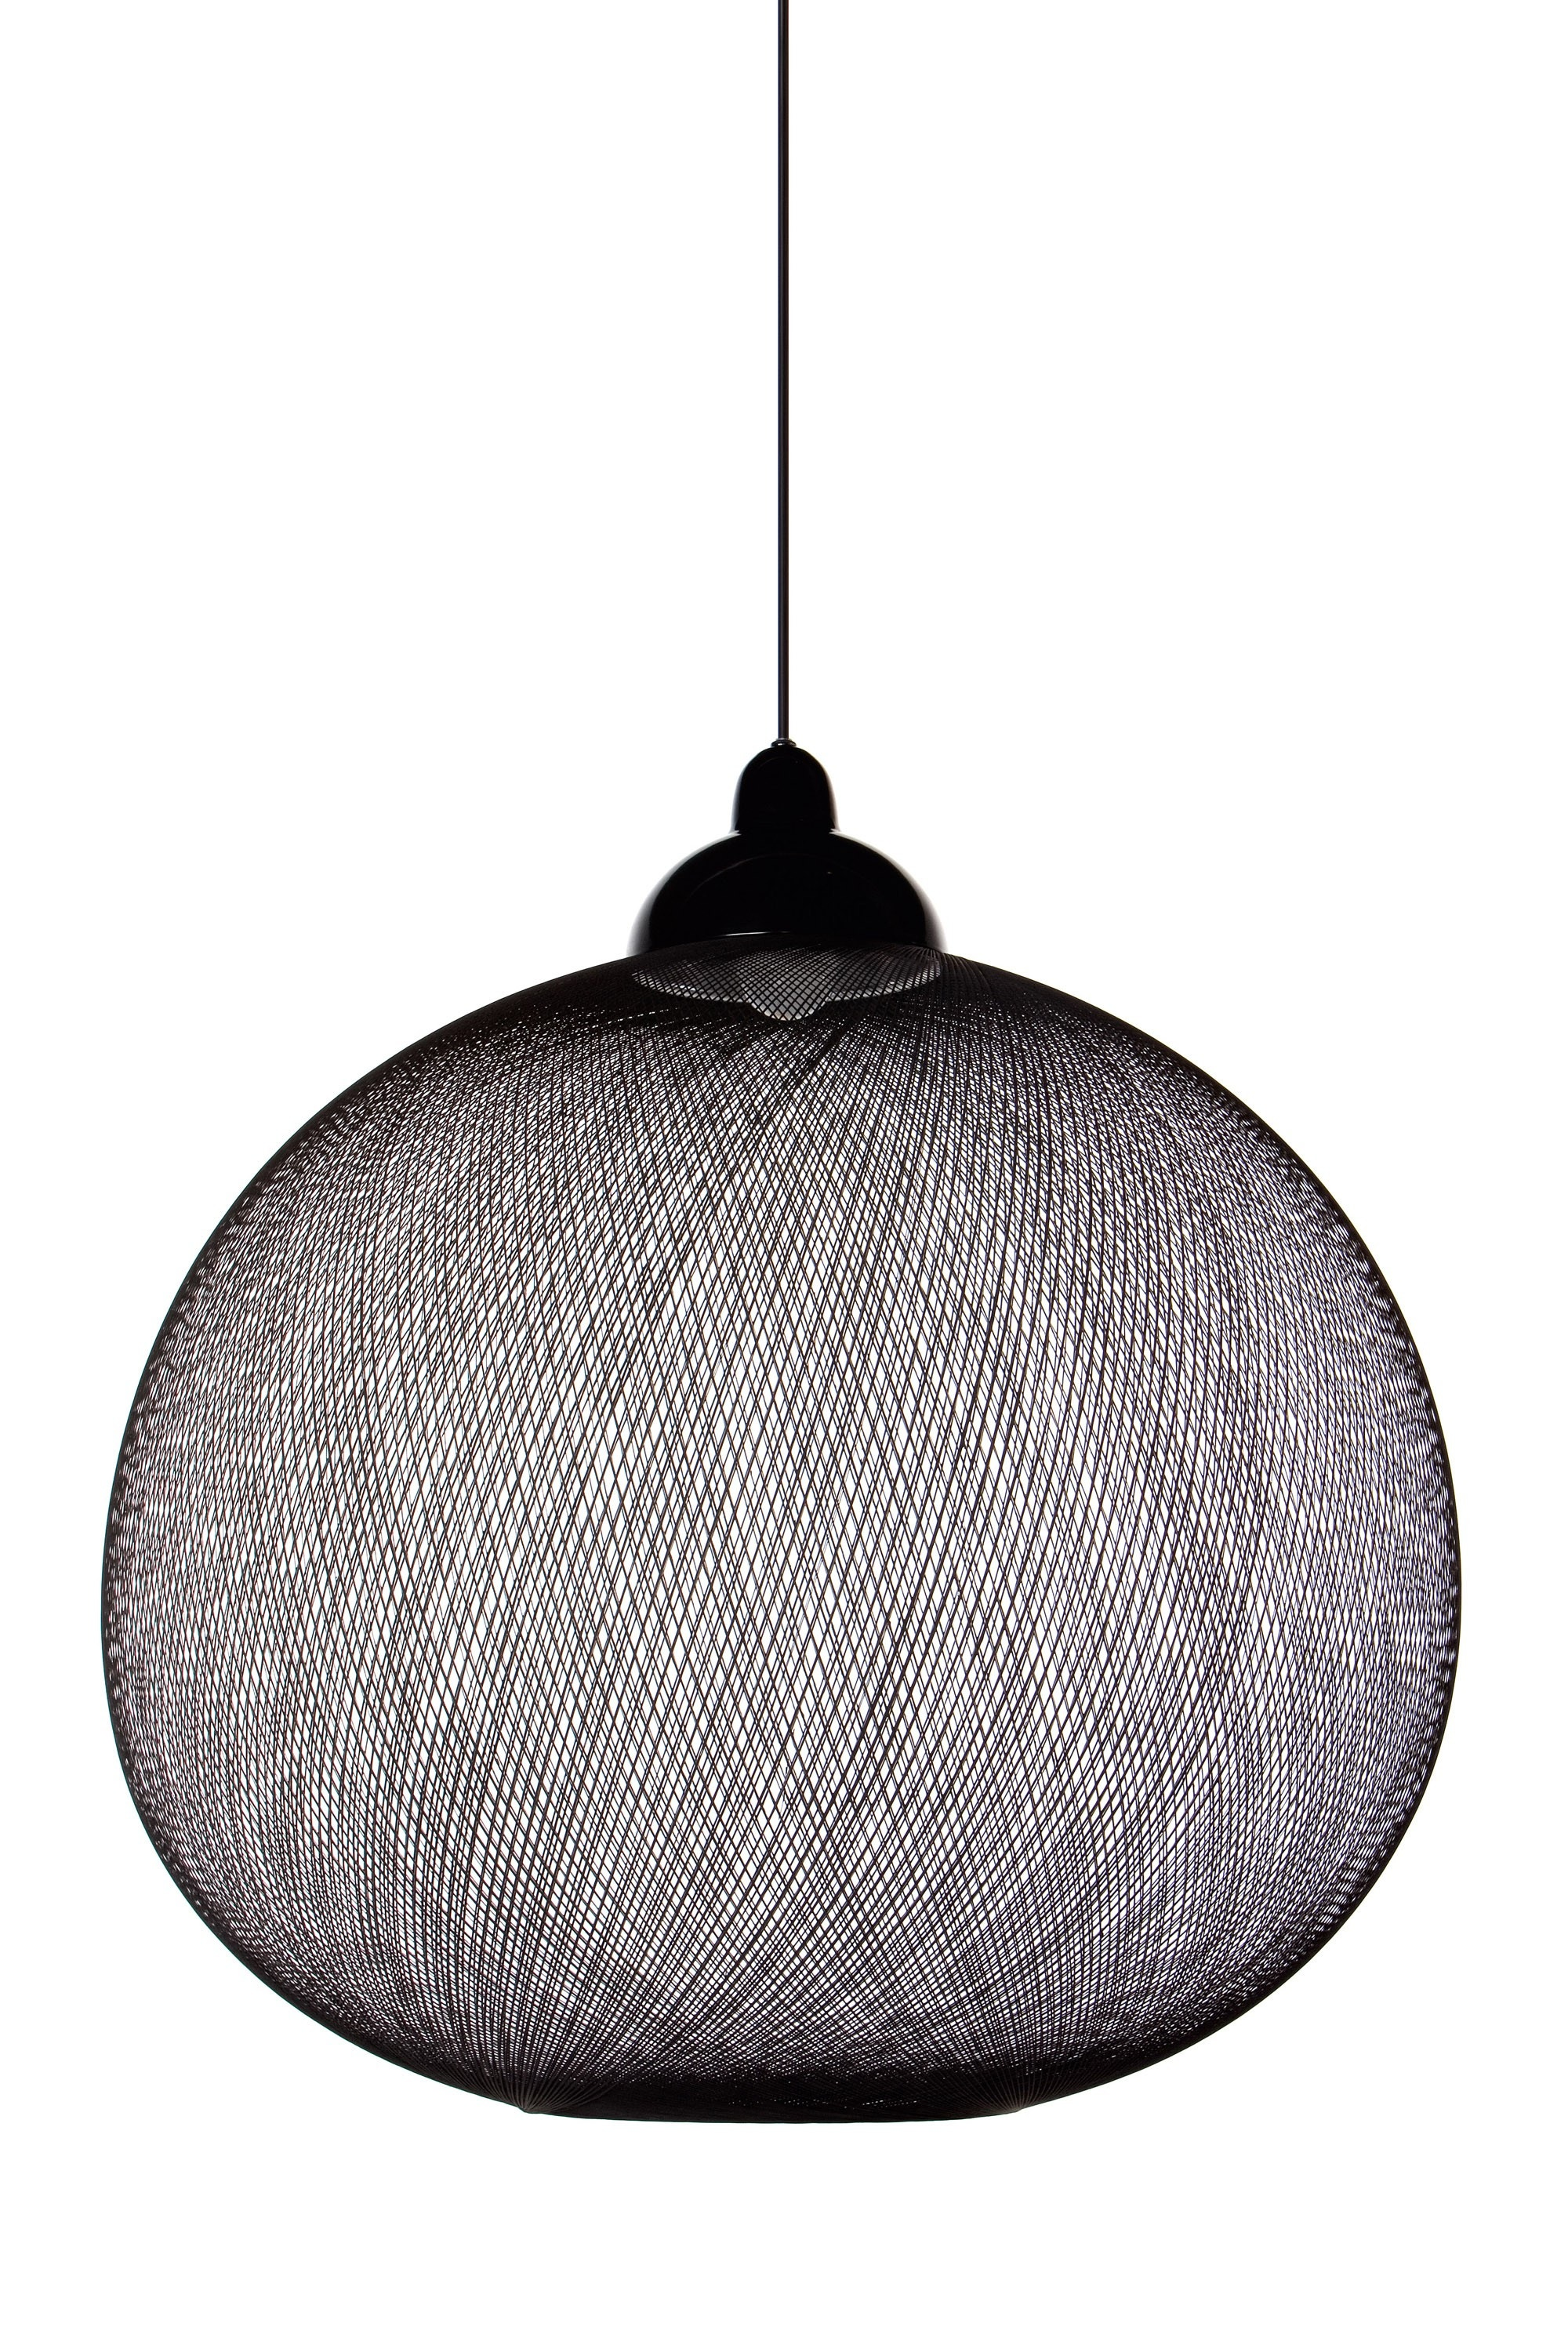 moooi non random d71 suspension lamp gr shop canada. Black Bedroom Furniture Sets. Home Design Ideas